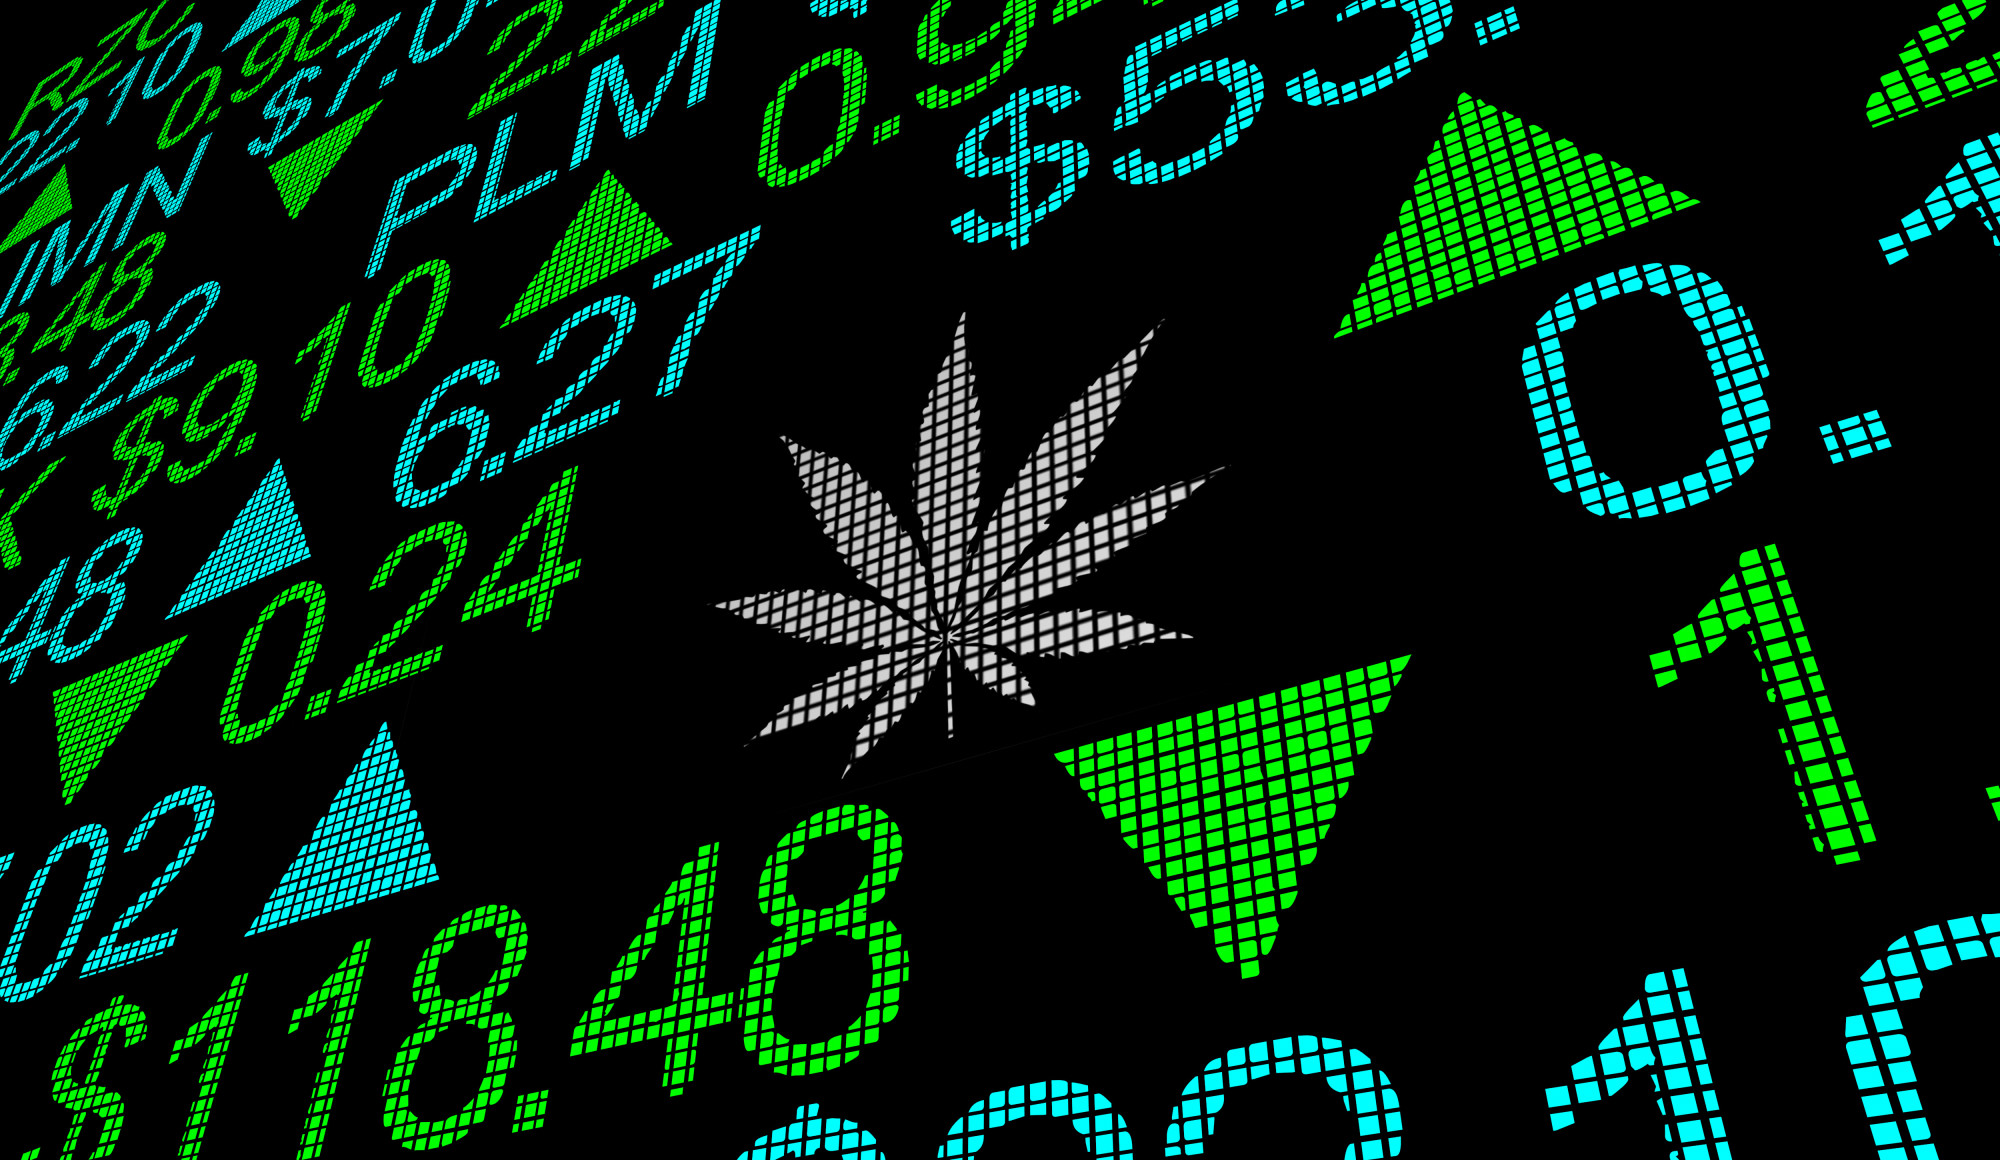 Should You Invest in Cannabis Stocks? Things You Need to Know